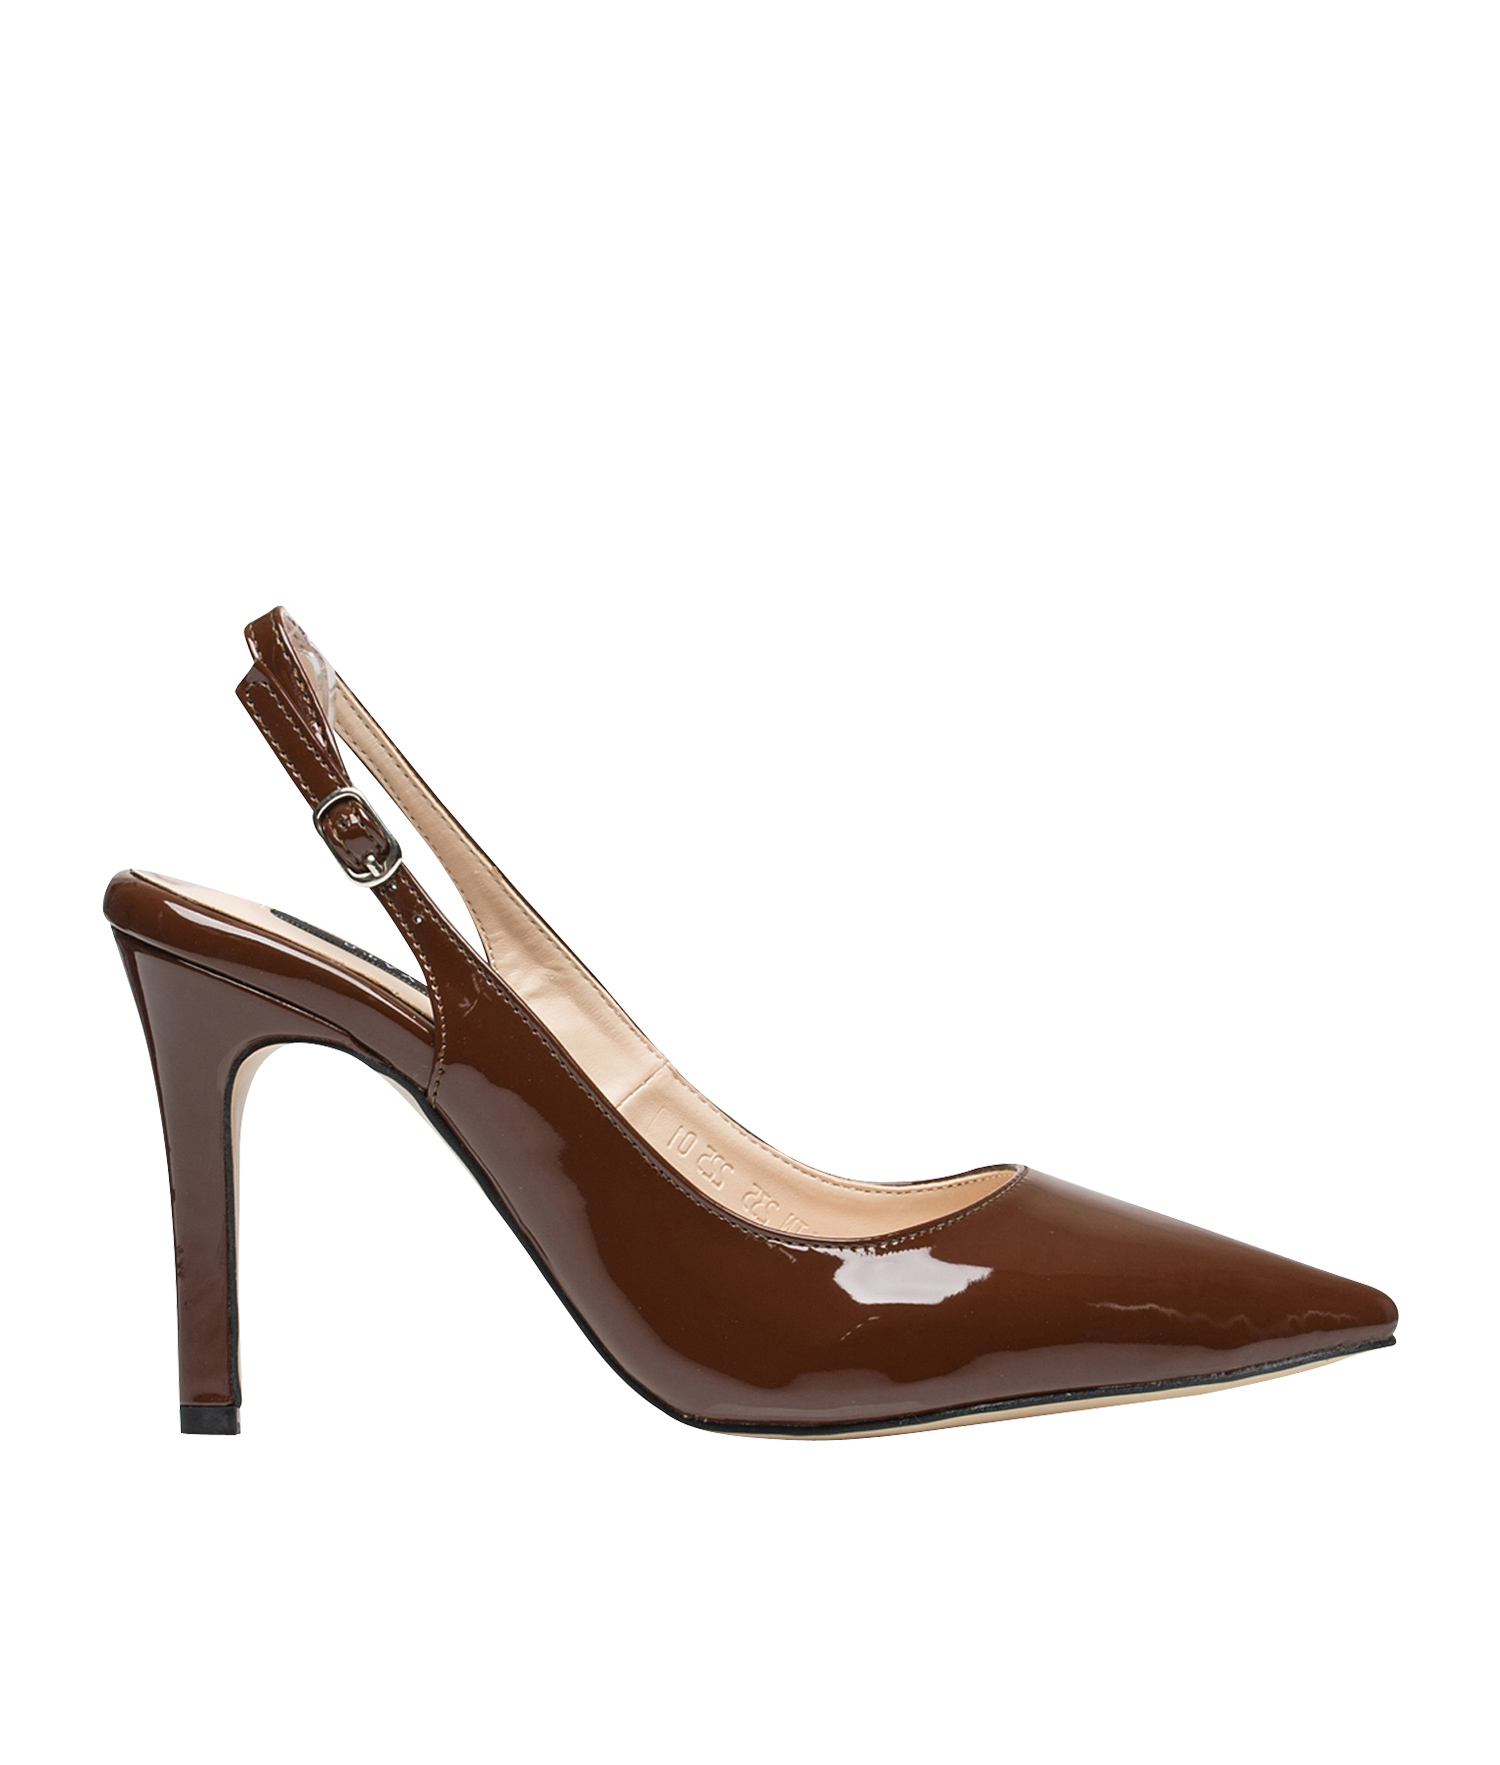 Patent Slingback High Heel Pumps Annakastleshoes Com